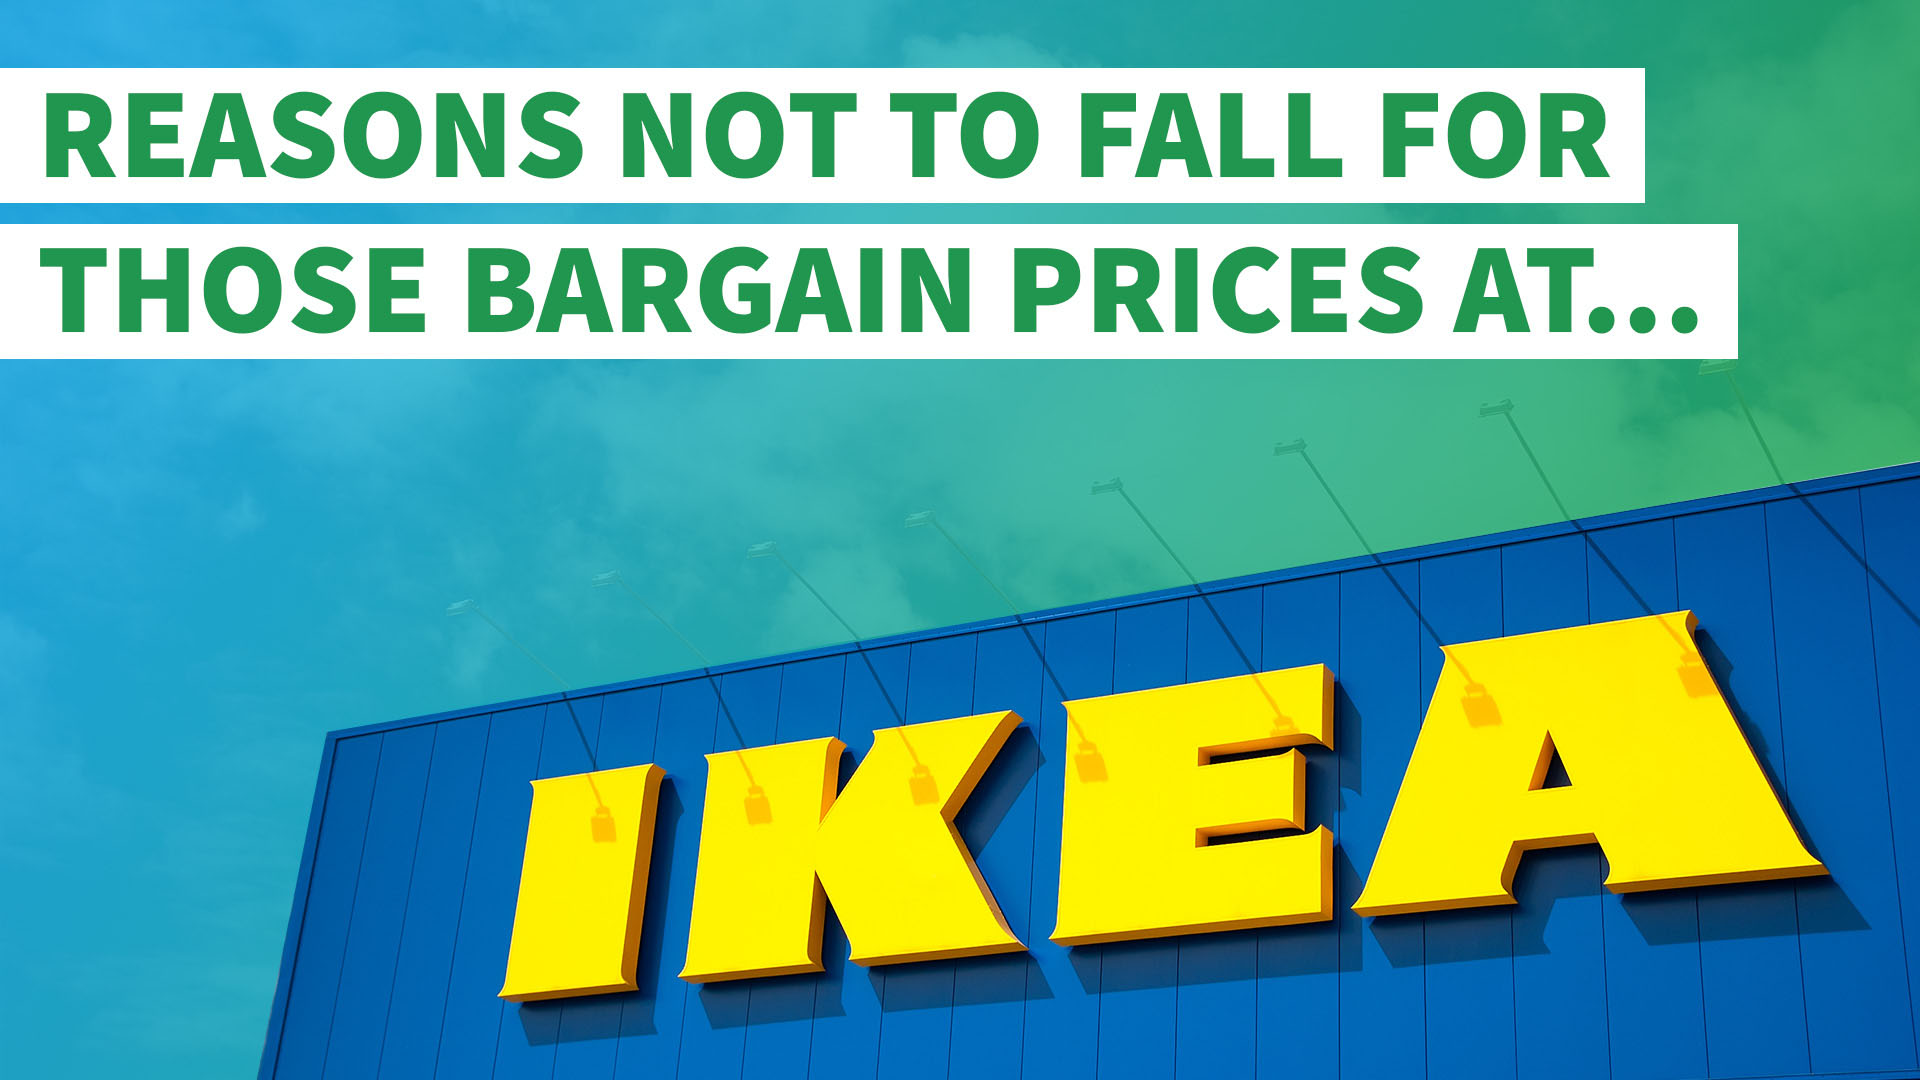 Ikea Business Ufficio : Reasons not to fall for those bargain prices at ikea gobankingrates